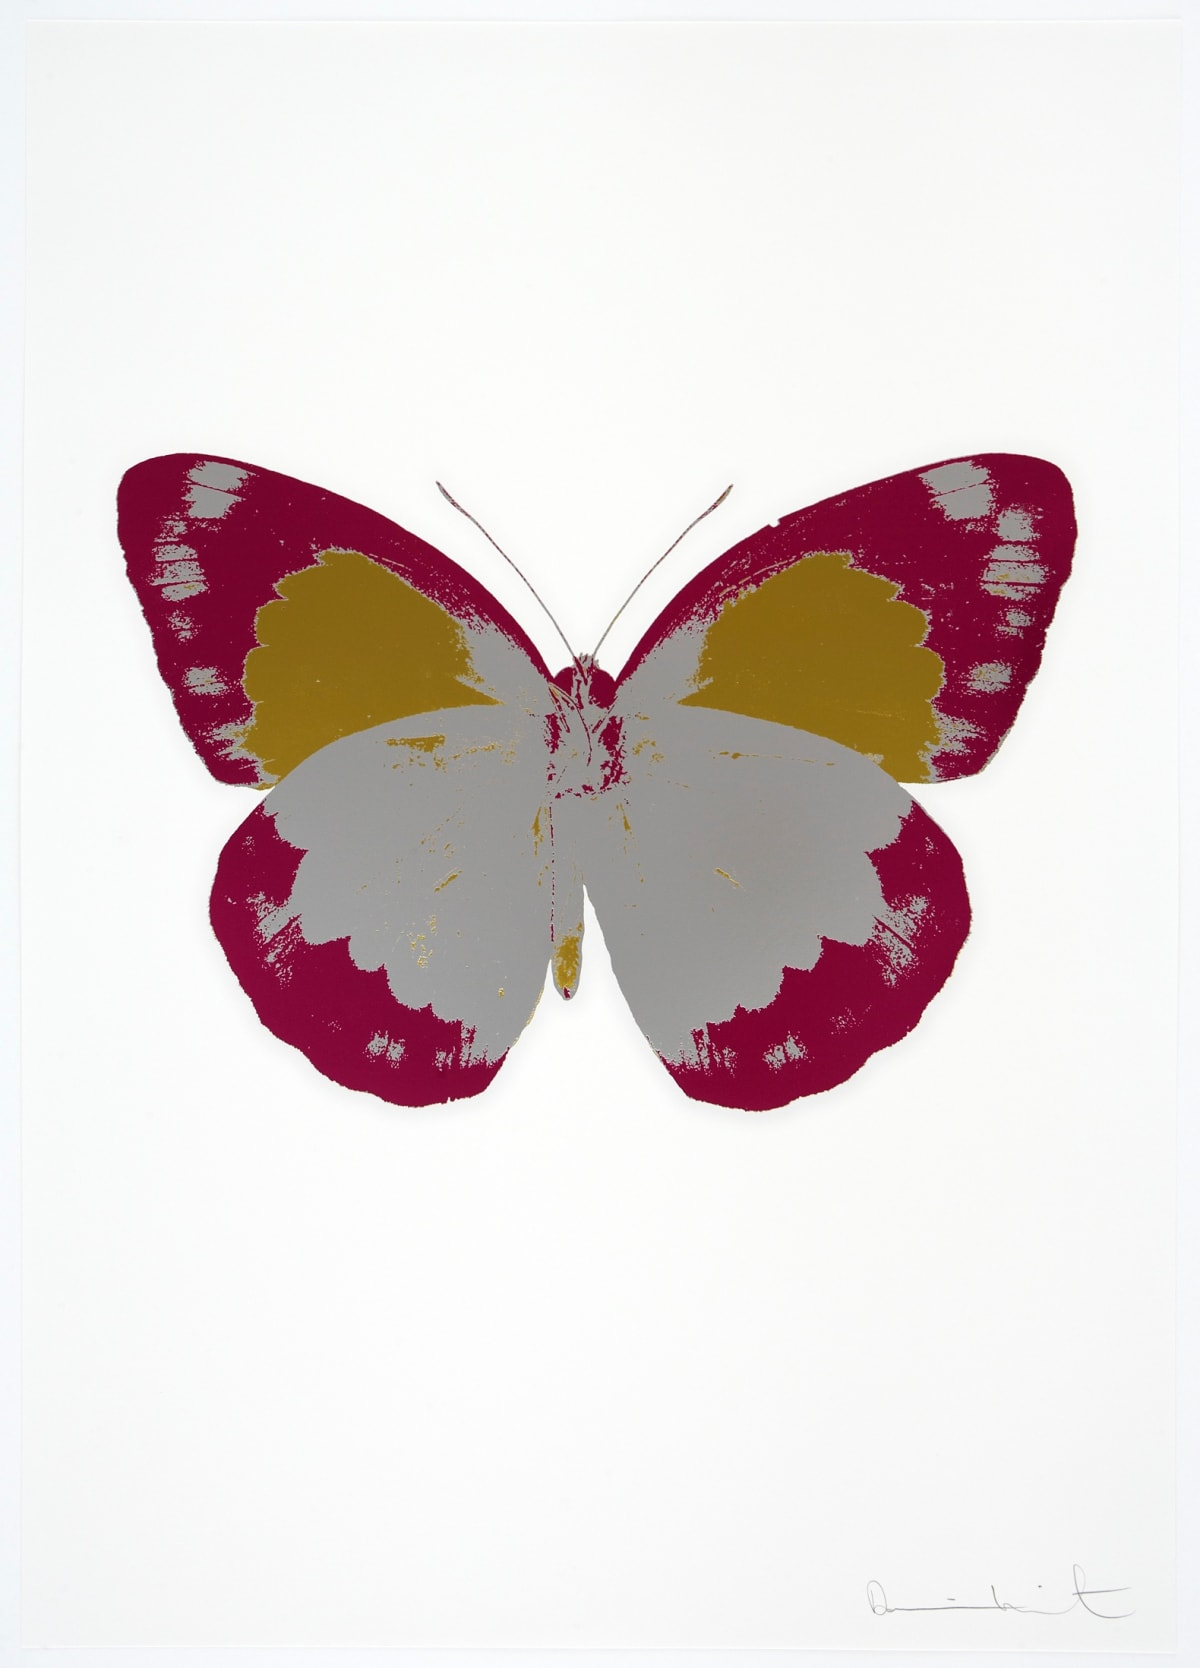 Damien Hirst The Souls II - Silver Gloss/Fuchsia Pink/Oriental Gold, 2010 3 colour foil block on 300gsm Arches 88 archival paper. Signed and numbered. Published by Paul Stolper and Other Criteria 72 x 51cm OC7880 / 658-63 Edition of 15